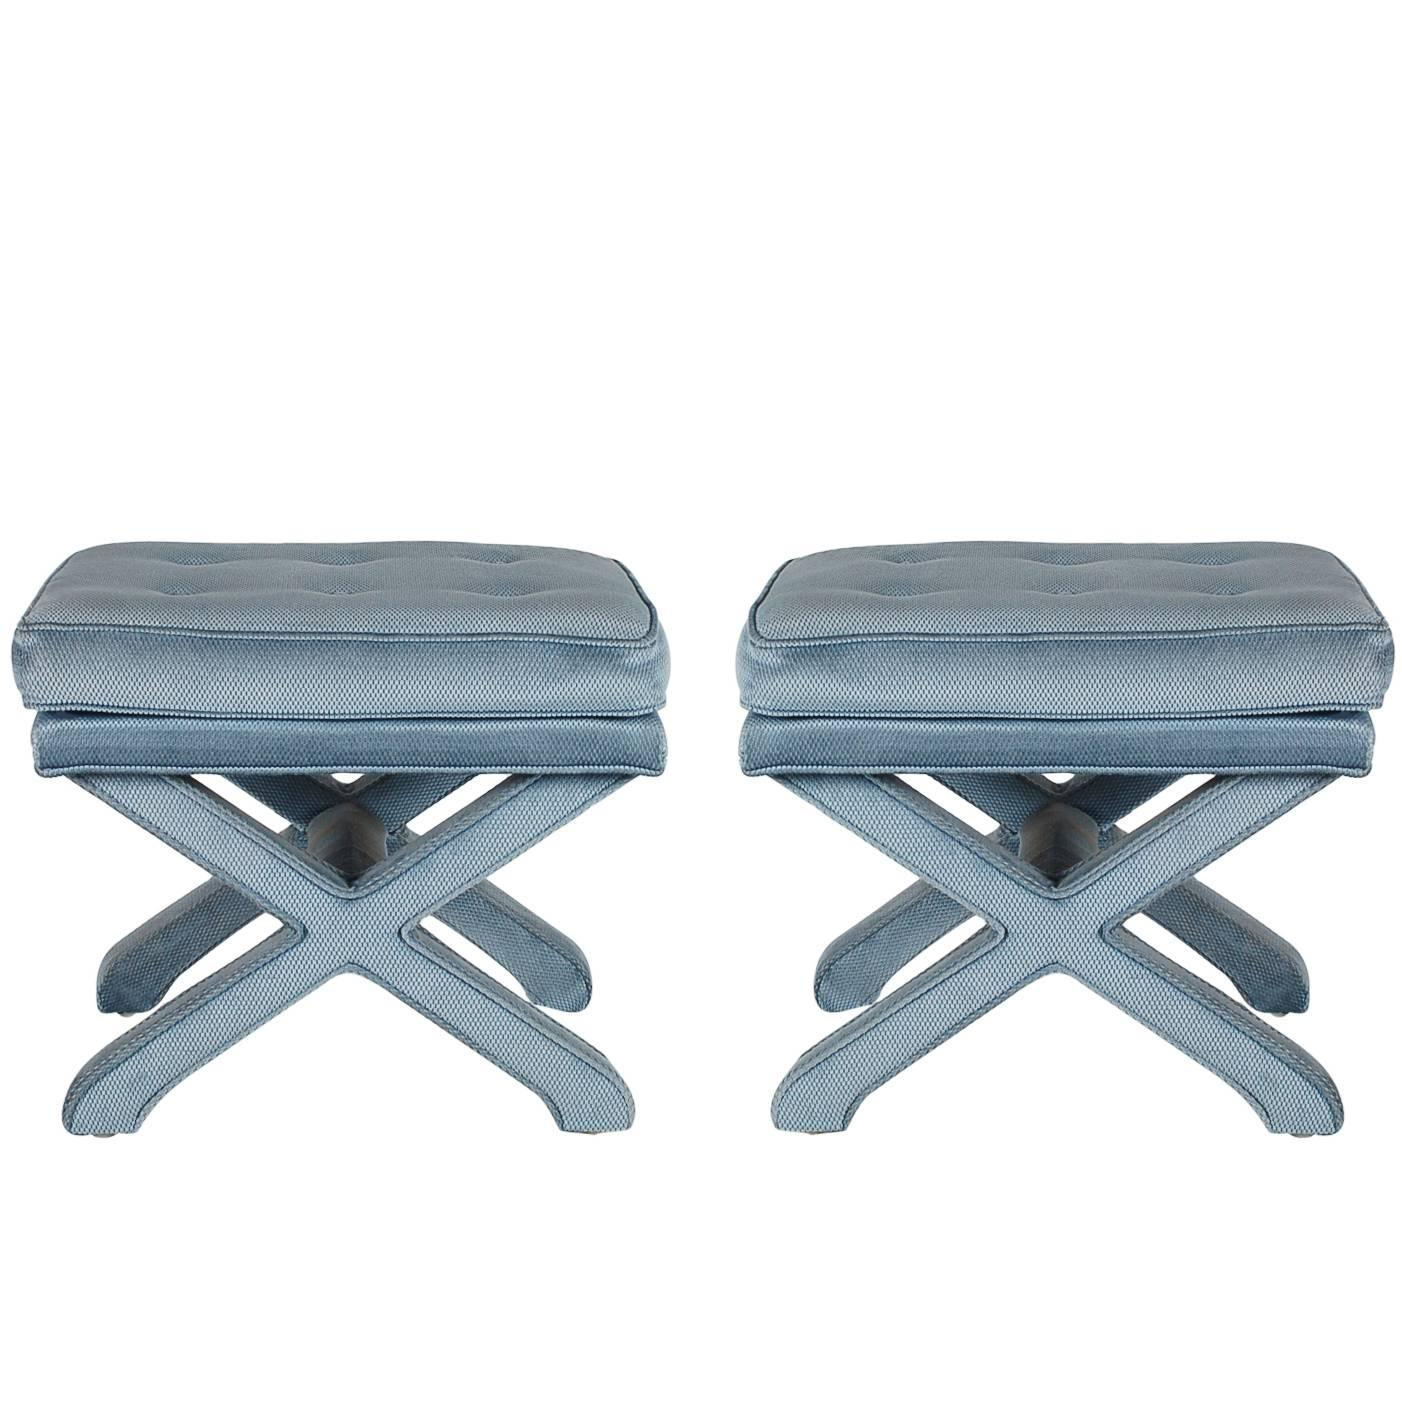 pair of x base stools or benches after billy baldwin at 1stdibs